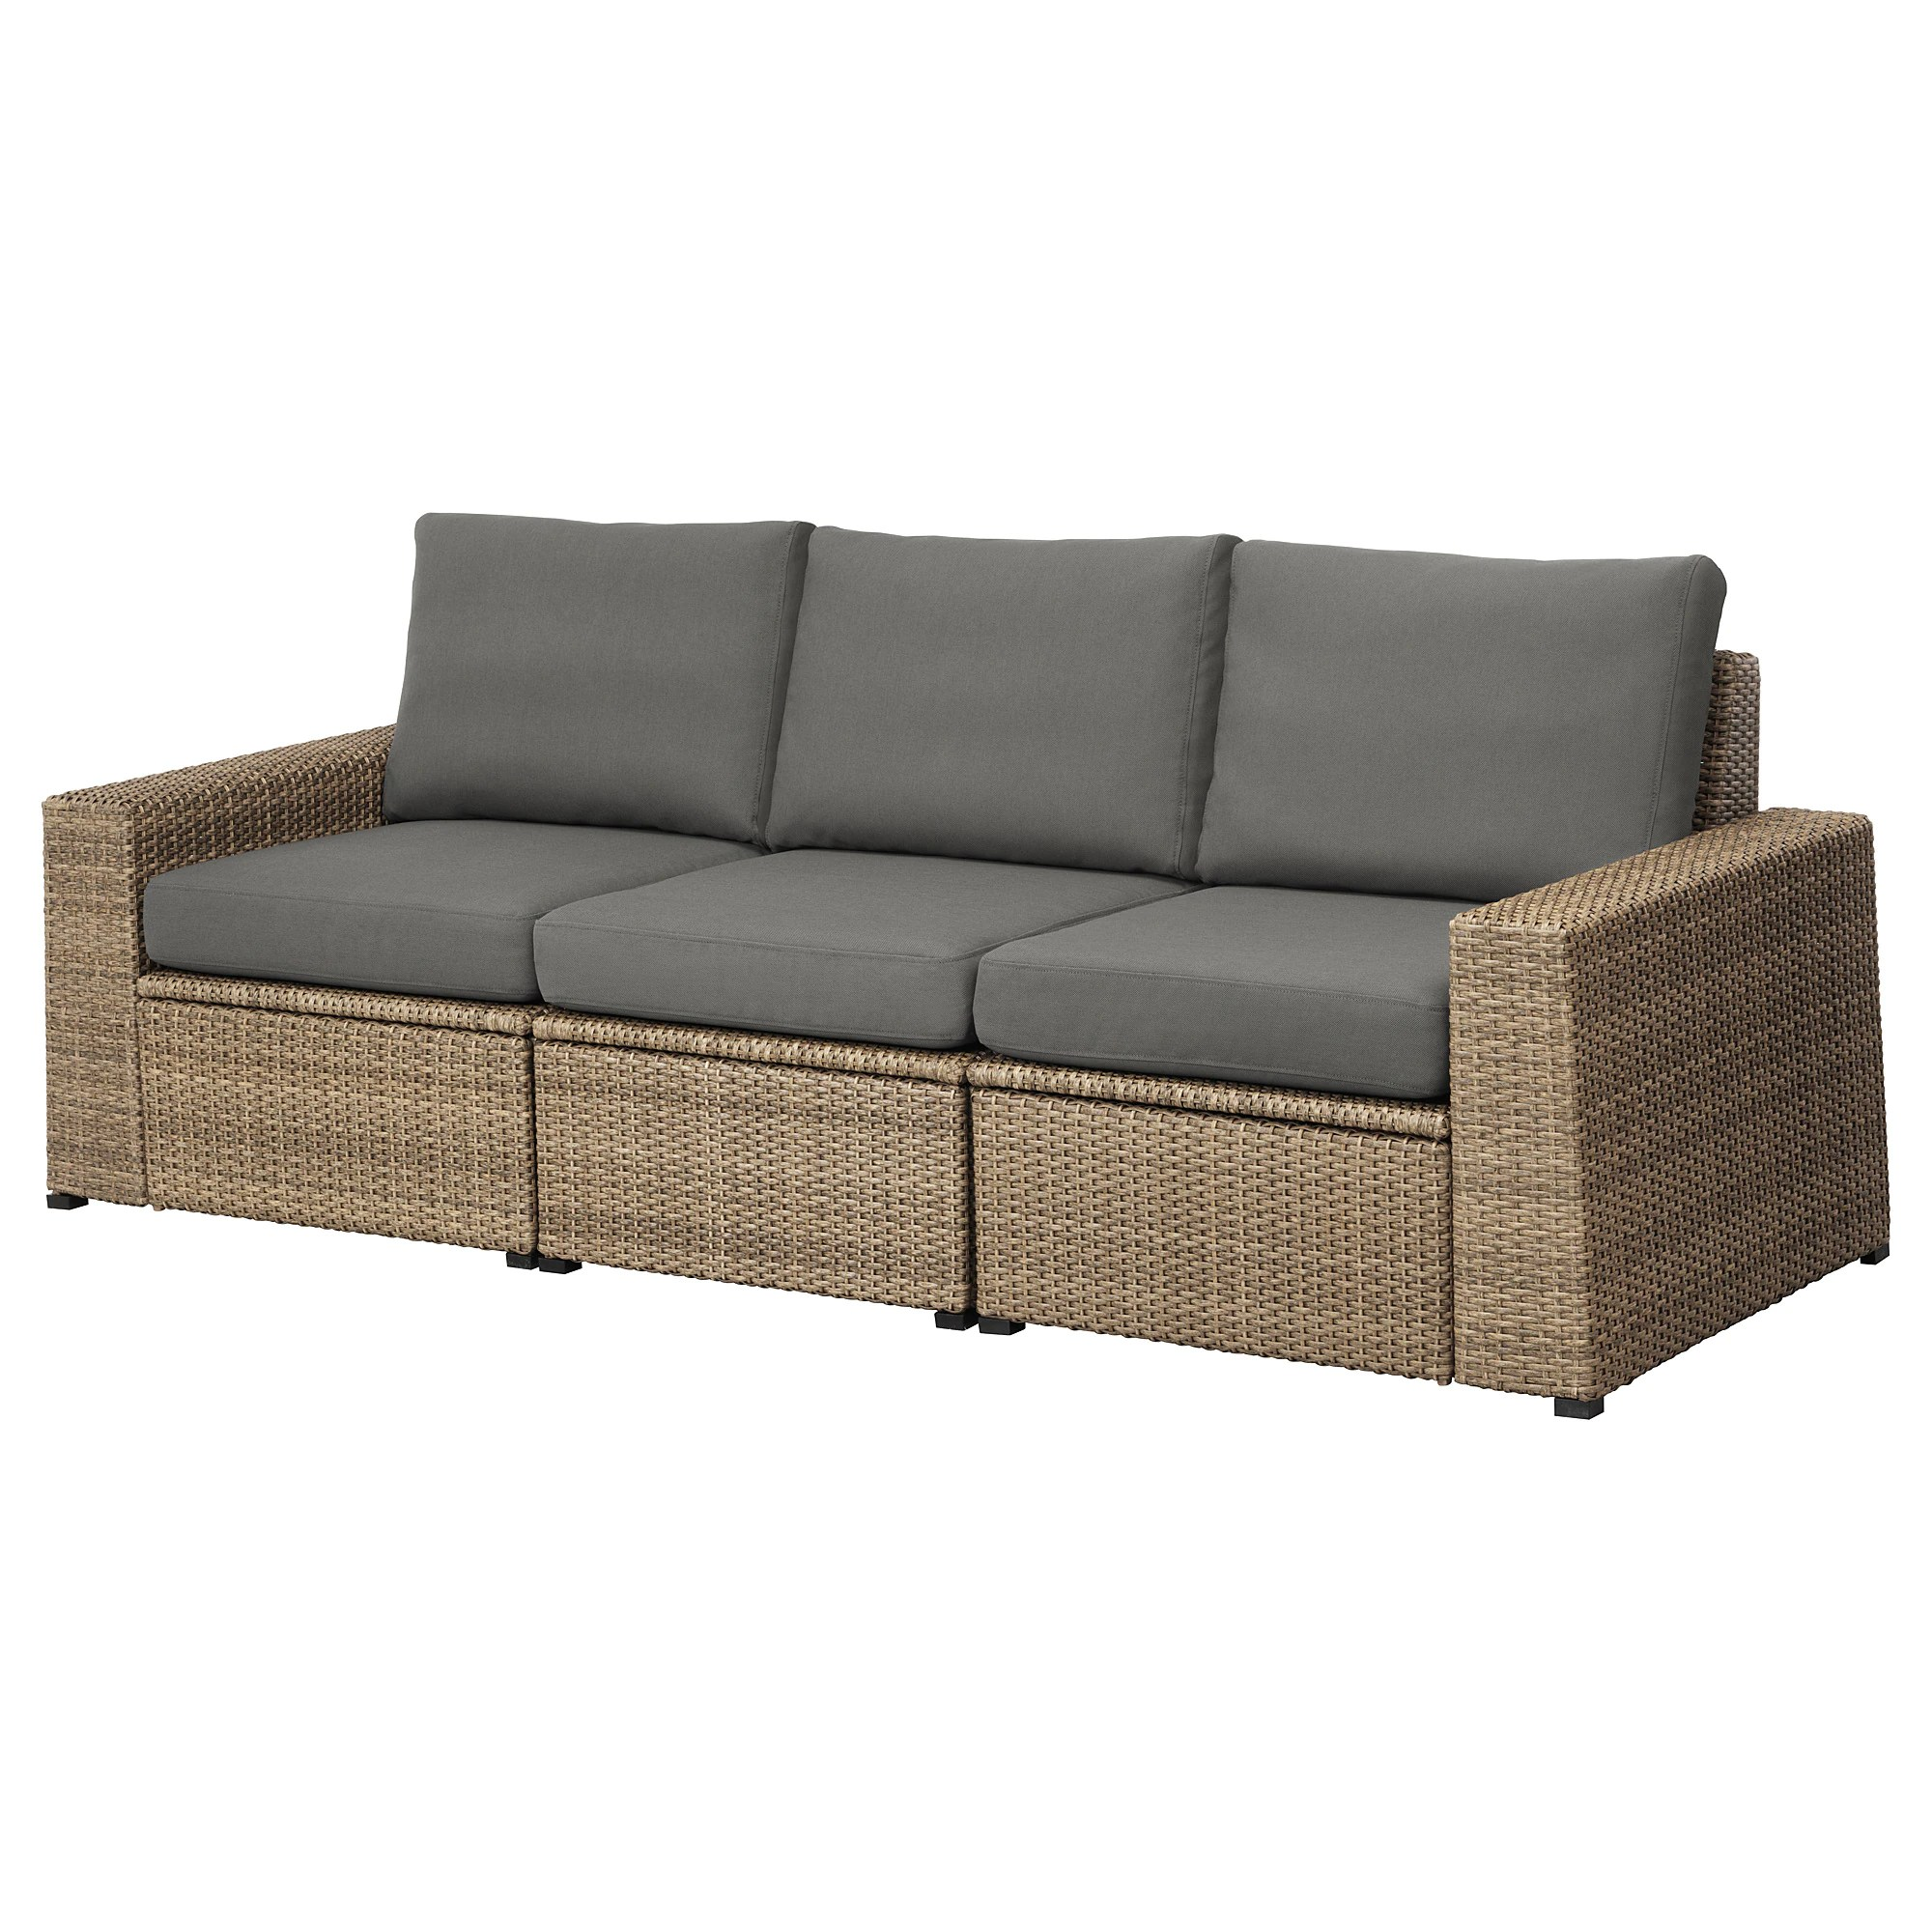 Cheap Modular Lounges SollerÖn 3 Seat Modular Sofa Outdoor Brown Frösön Duvholmen Dark Gray